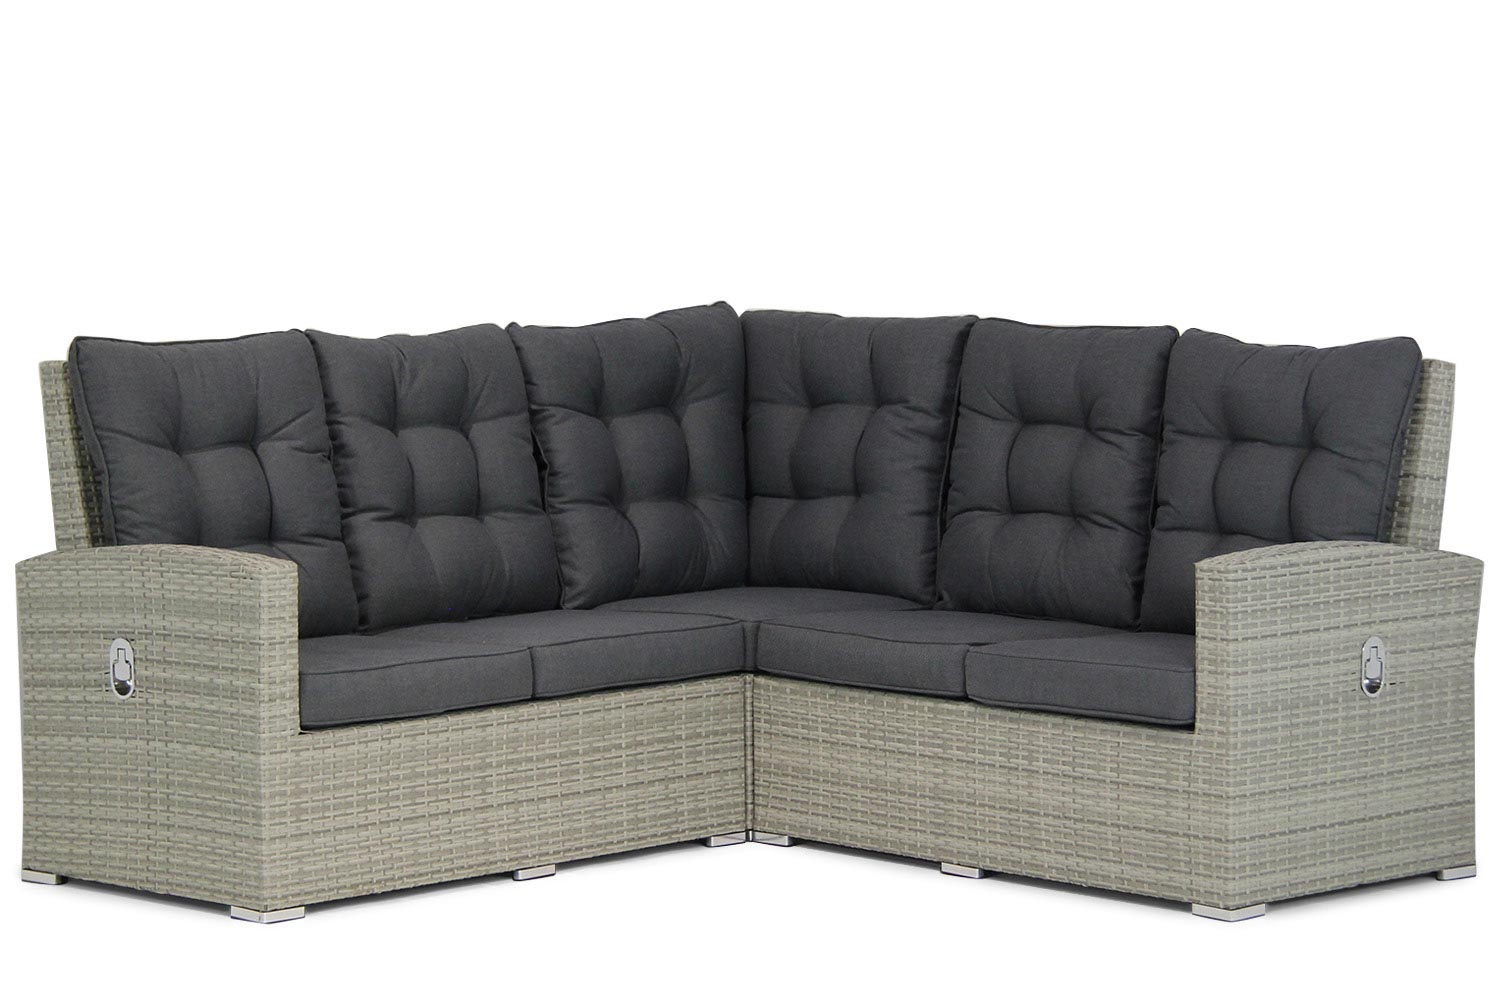 Garden Collections Sheffield dining loungeset 3-delig